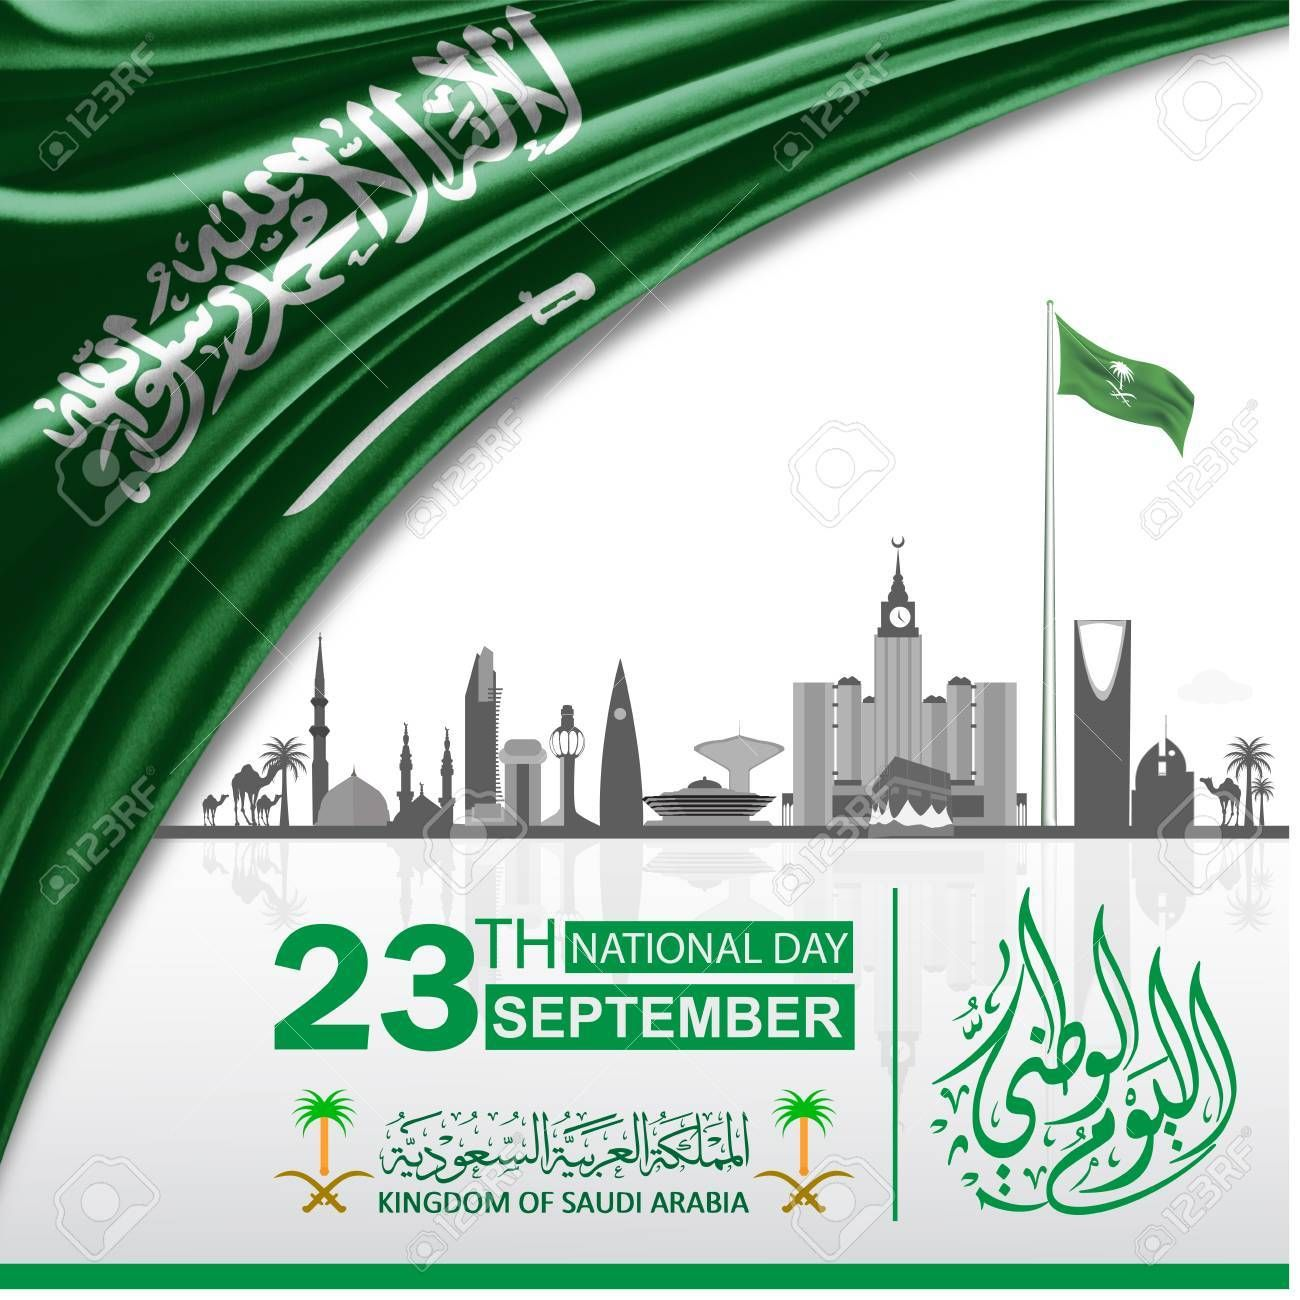 Saudi Arabia Happy Independence Day With Vector Design In Arabic Means National Day Affiliate Indepe Happy National Day National Day Saudi National Day